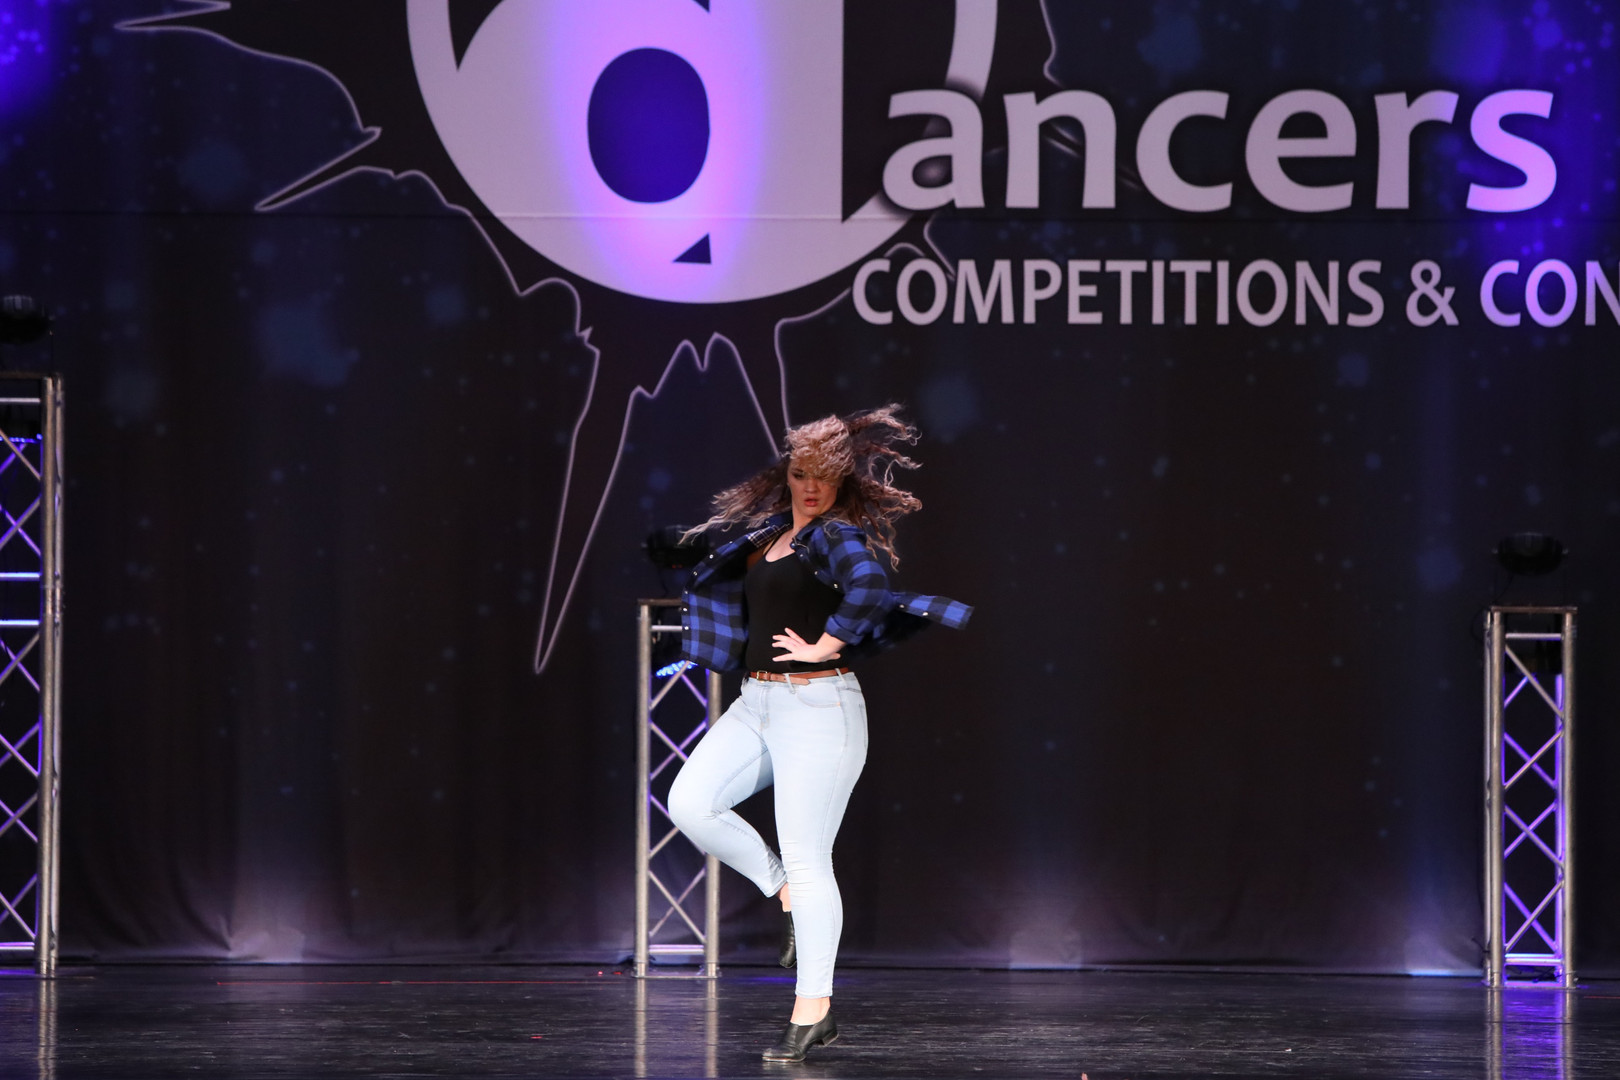 Dancers. Inc Competition